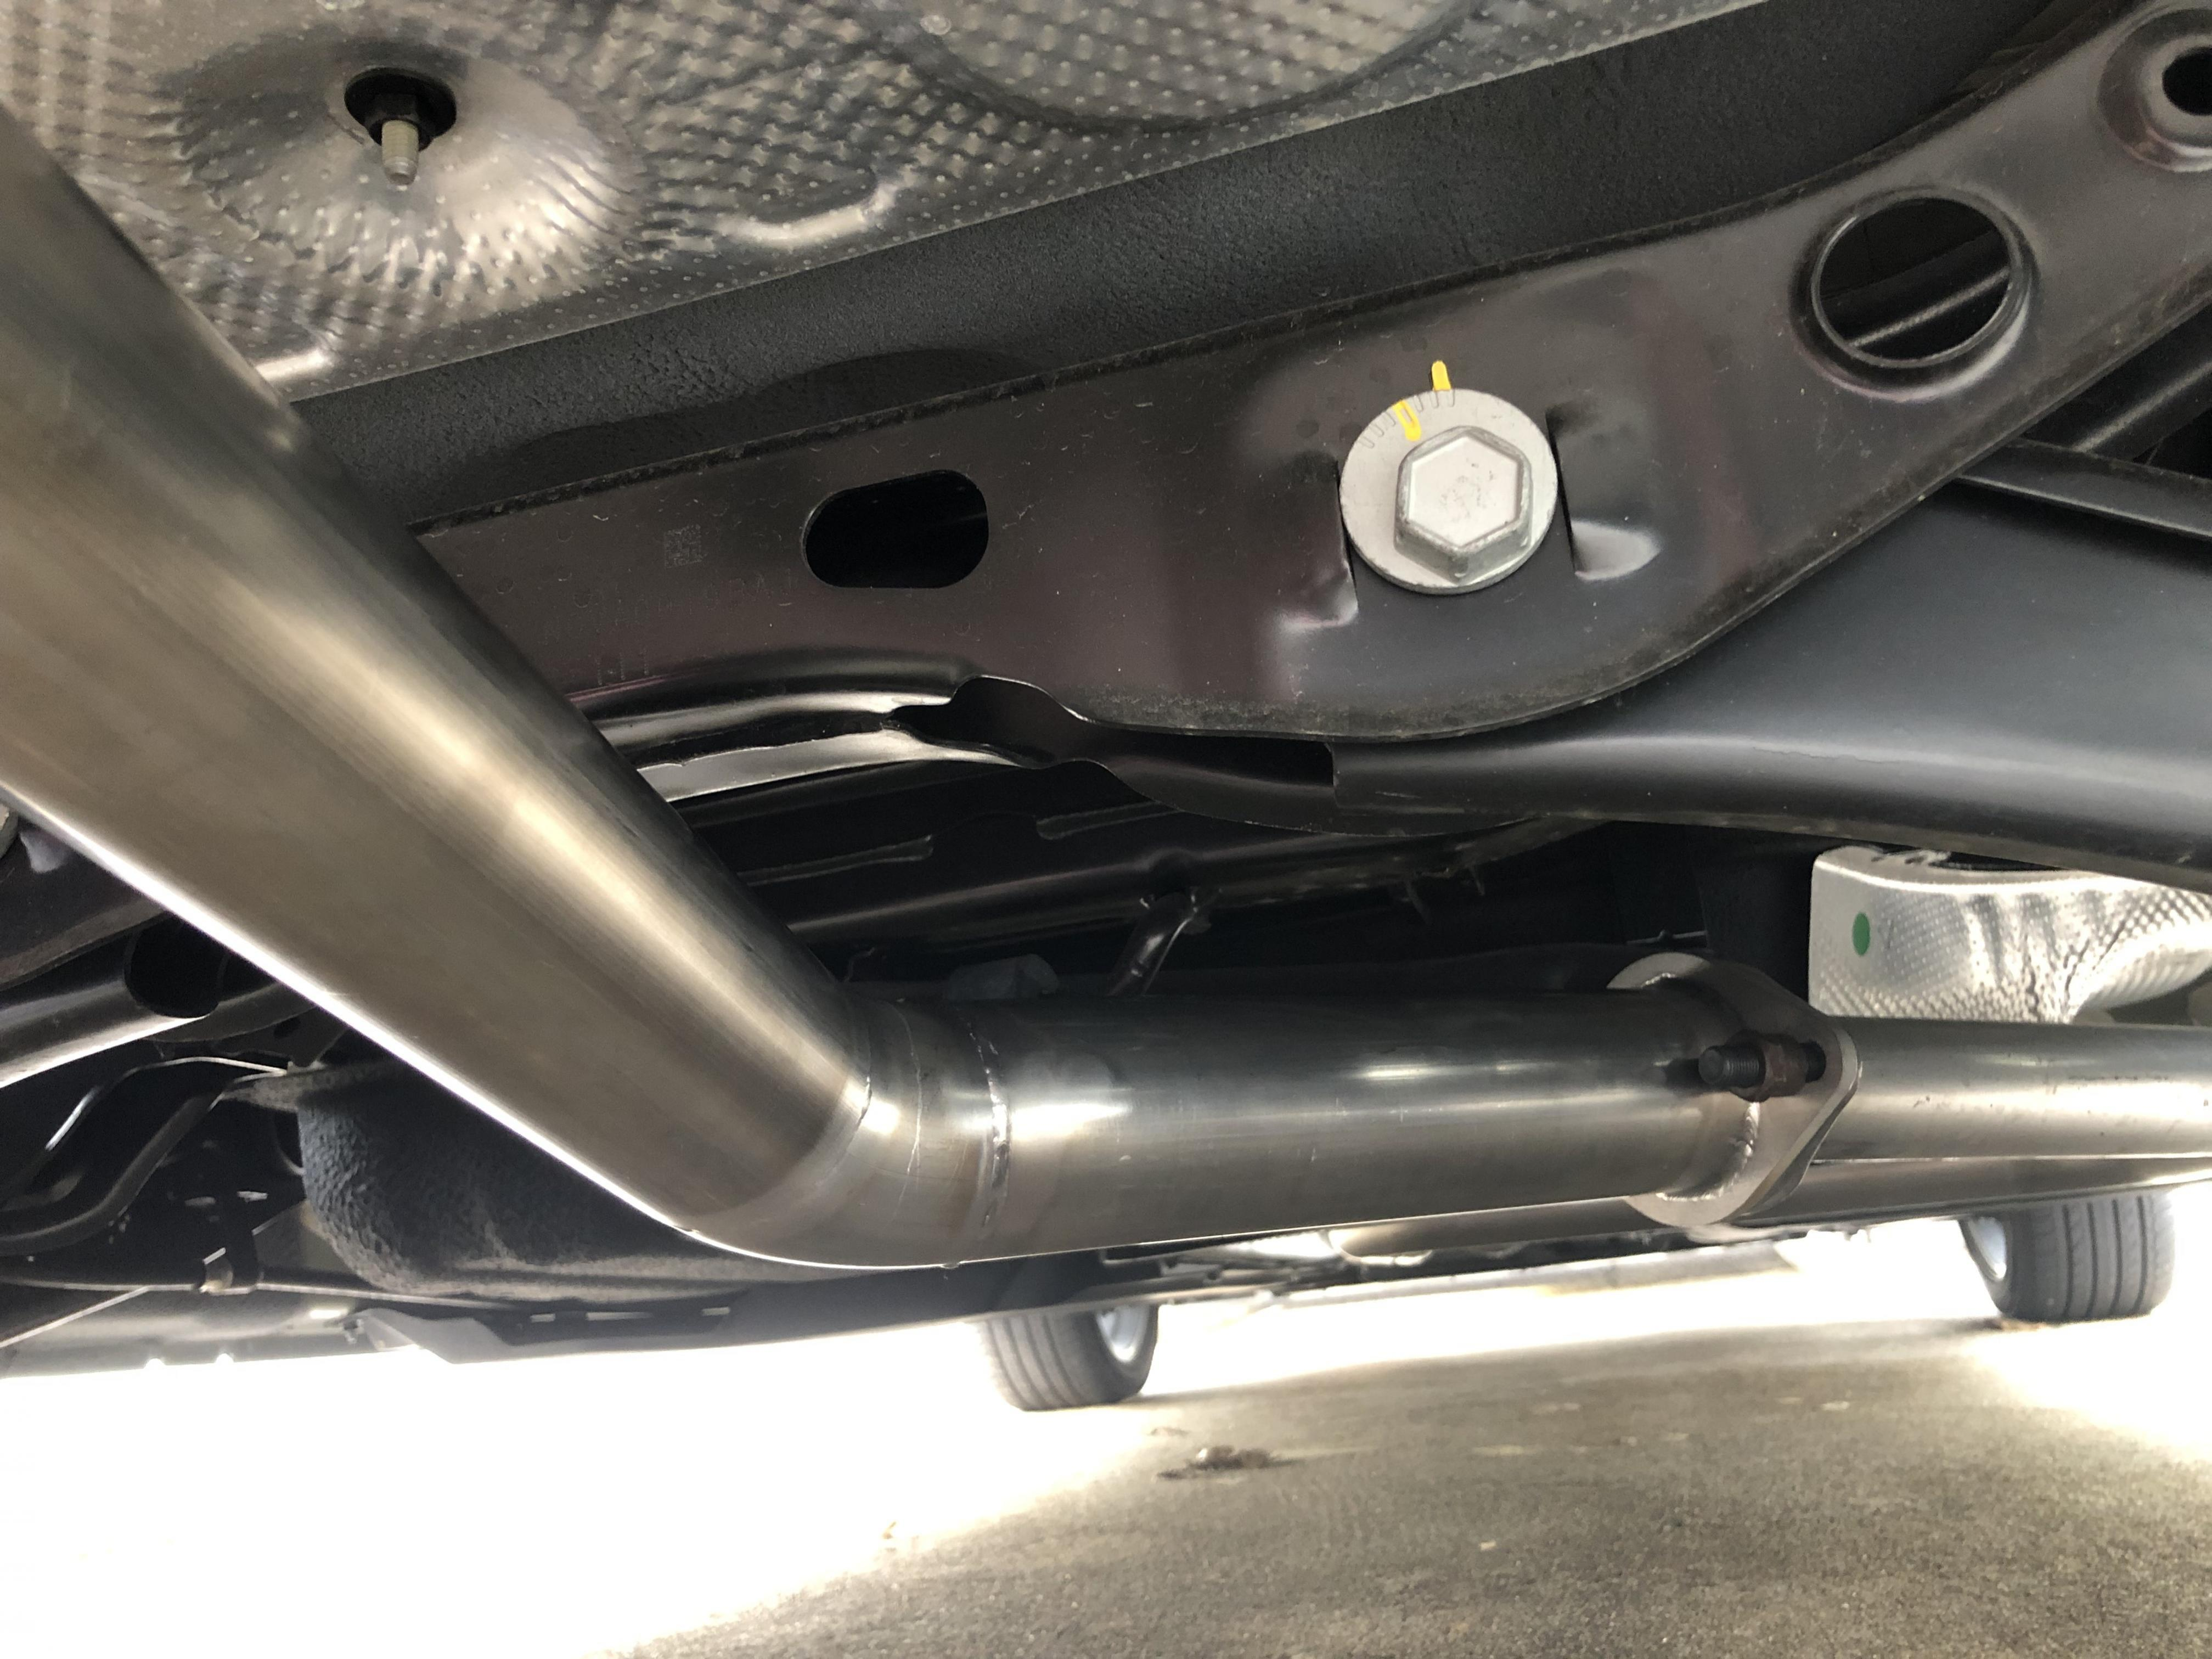 """""""New Axle-Back Exhaust System for my 2019 Hyundai Veloster 2.0L""""...-2019-hyundai-veloster-2.0l-axle-back-exhaust-system-2.jpg"""